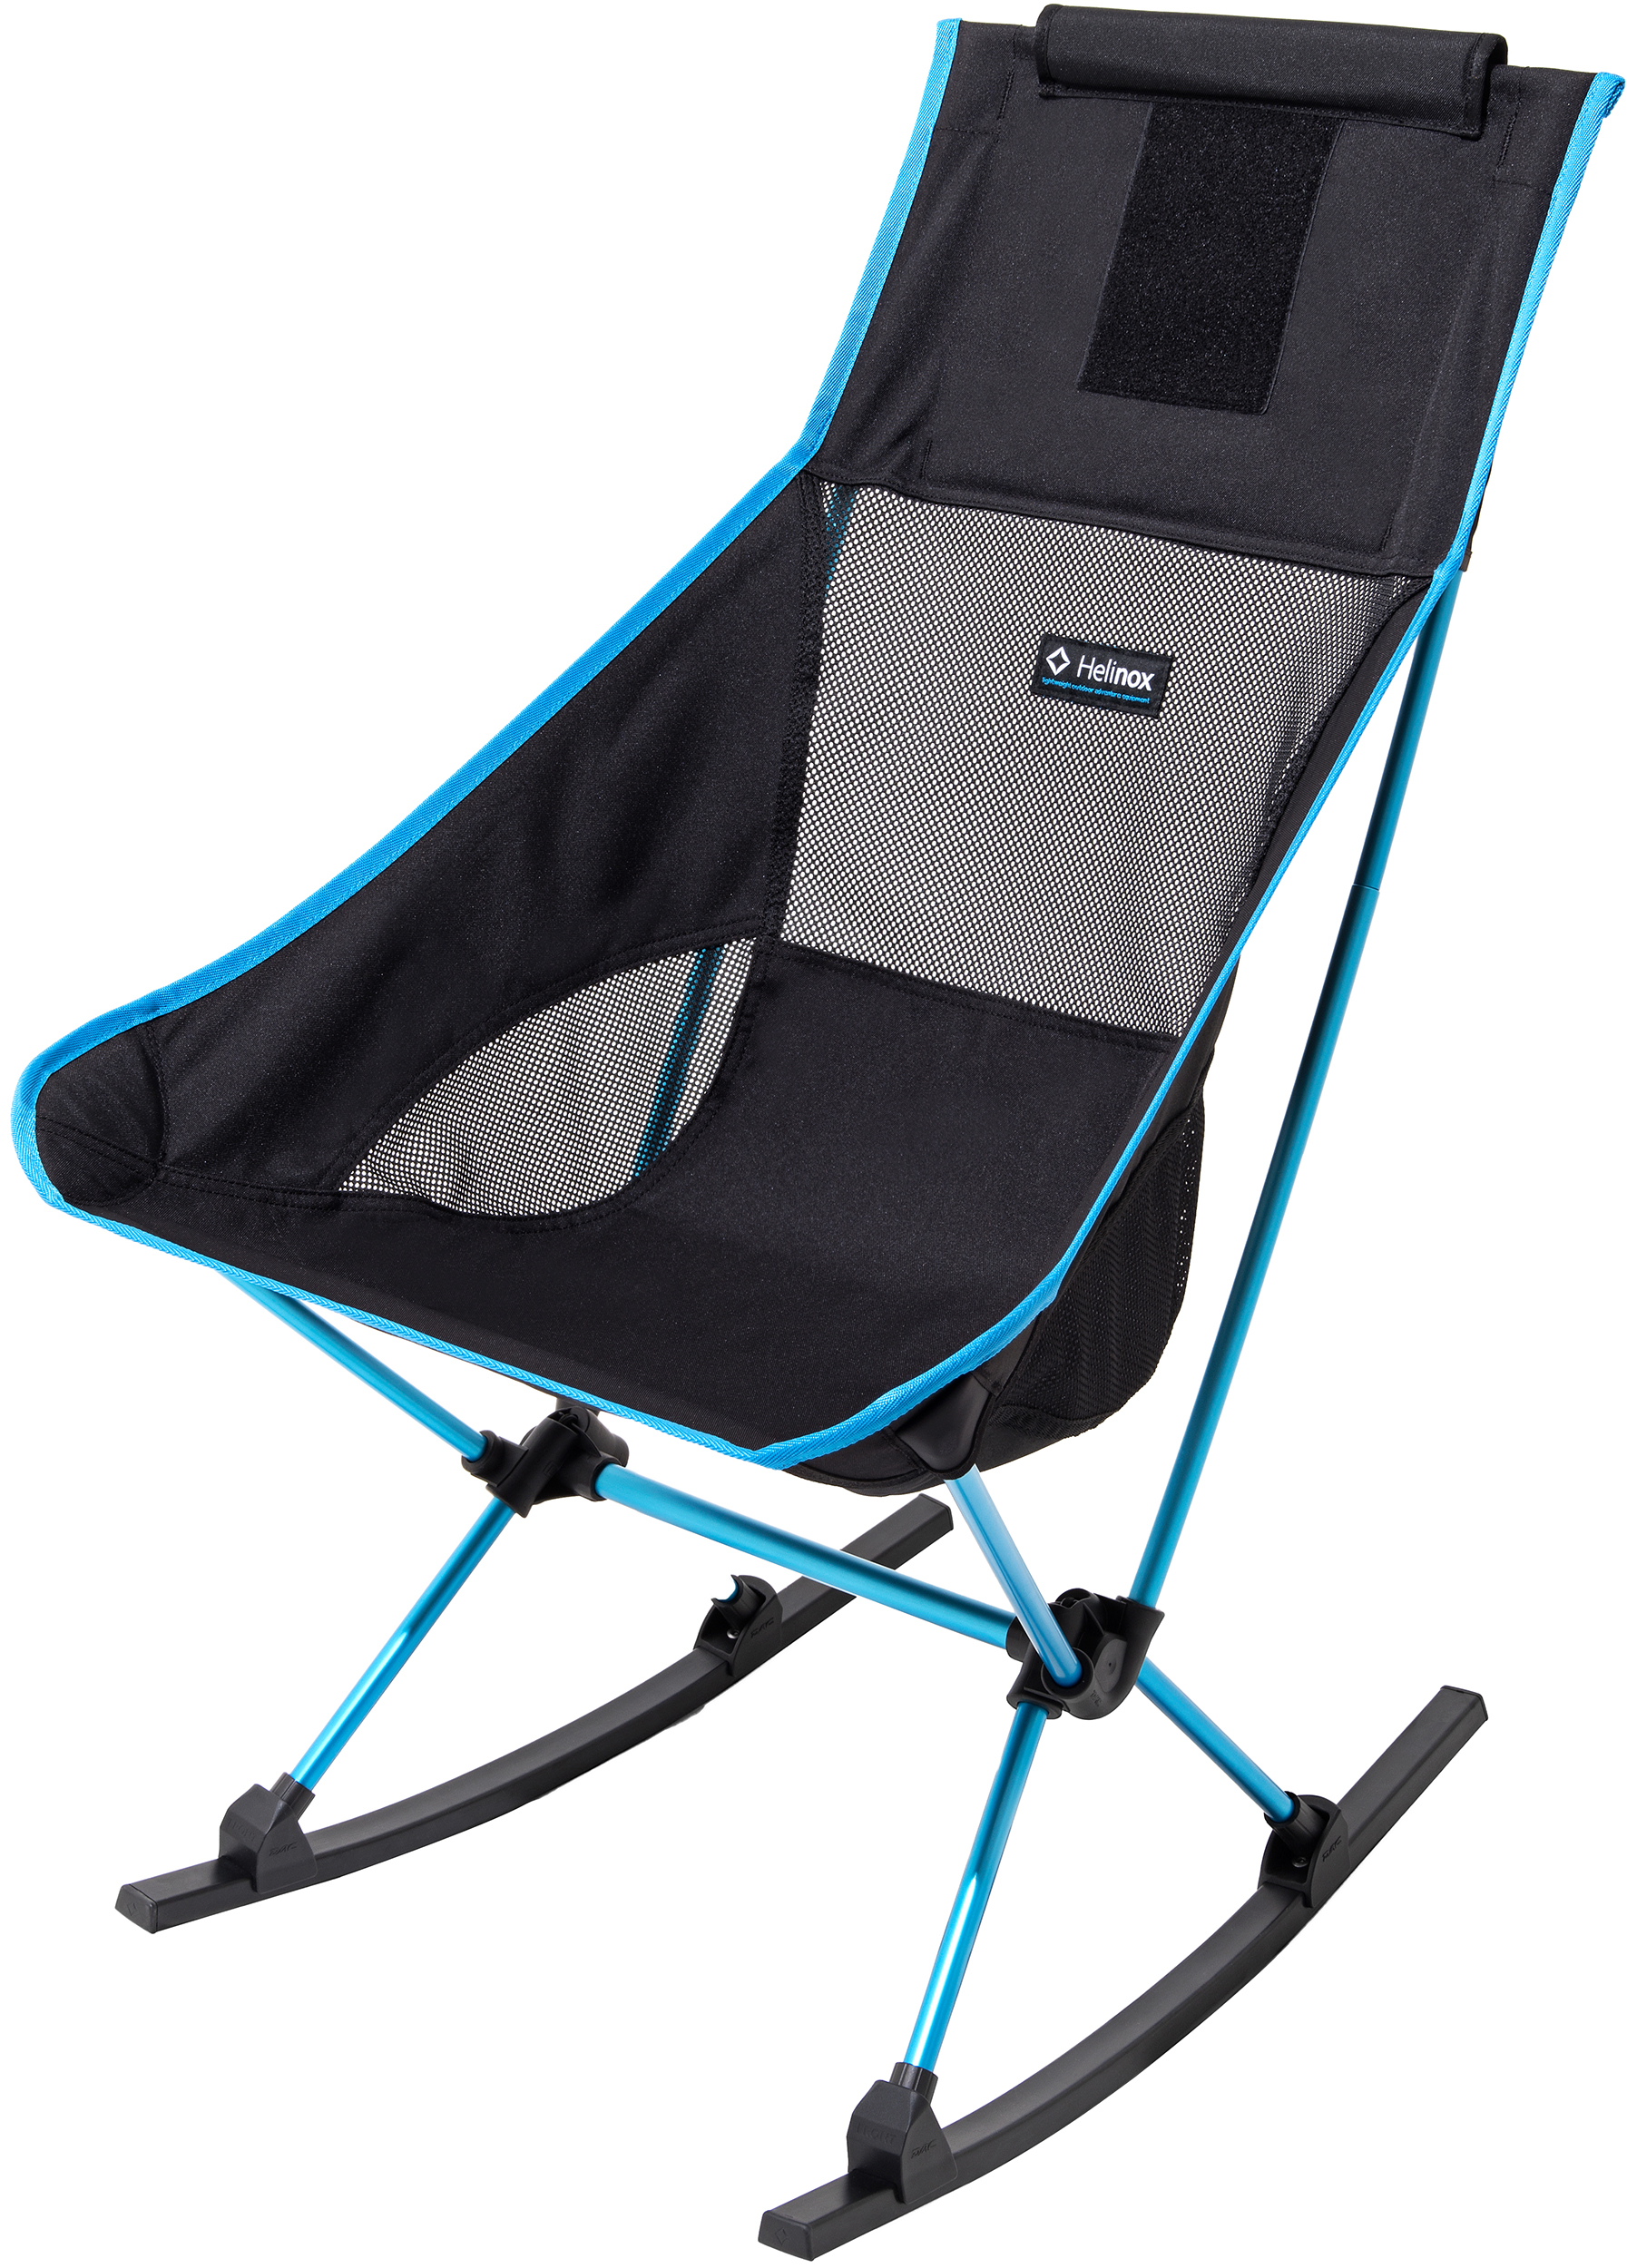 ground chairs lightweight camping chair helinox